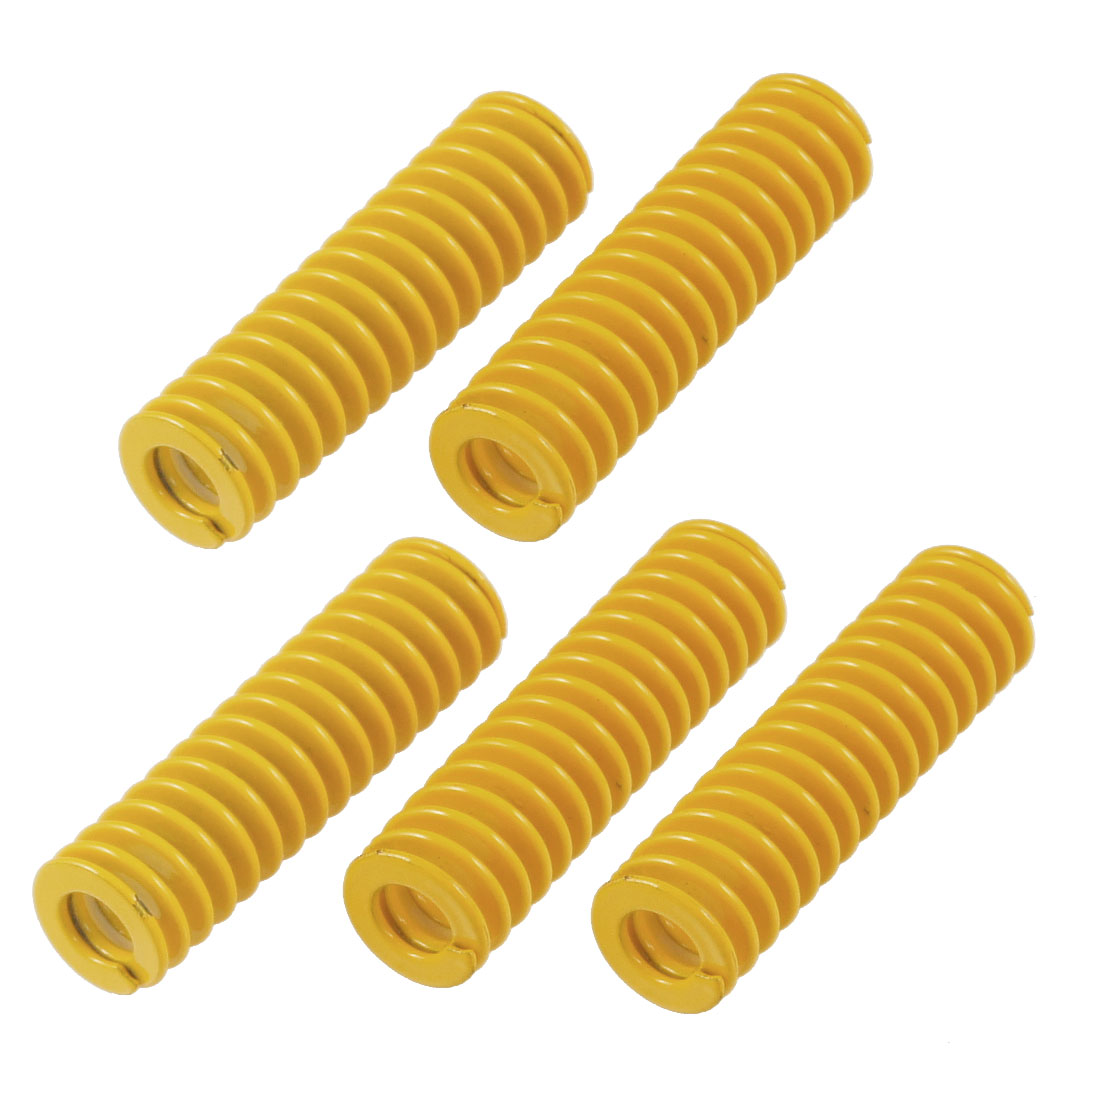 5 Pcs 14mm x 7mm x 50mm Spiral Metal Stamping Compression Die Spring